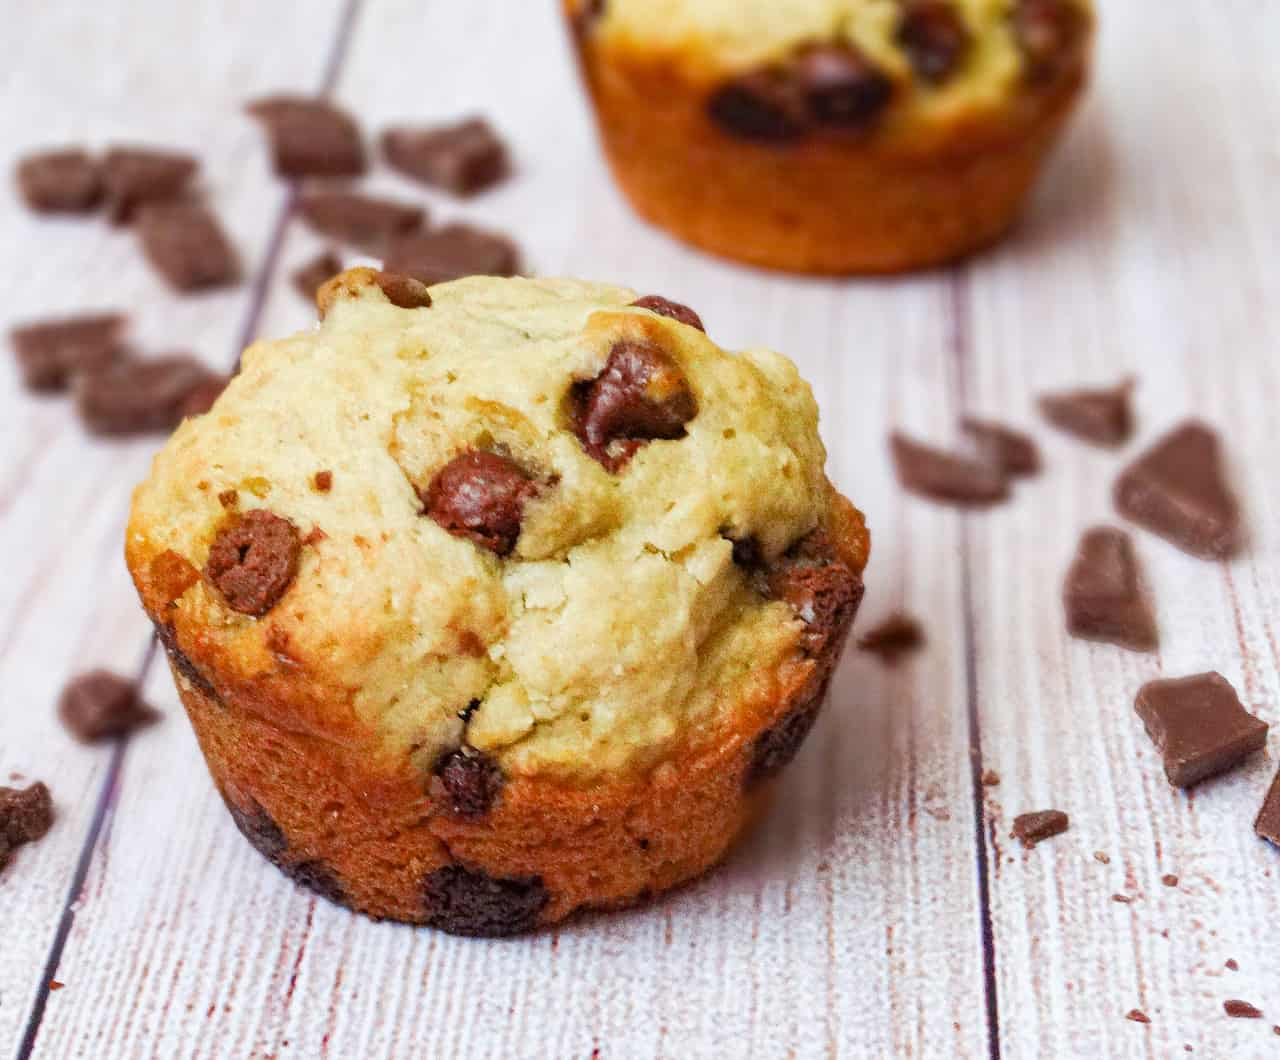 almond milk chocolate chip muffin on a wooden background